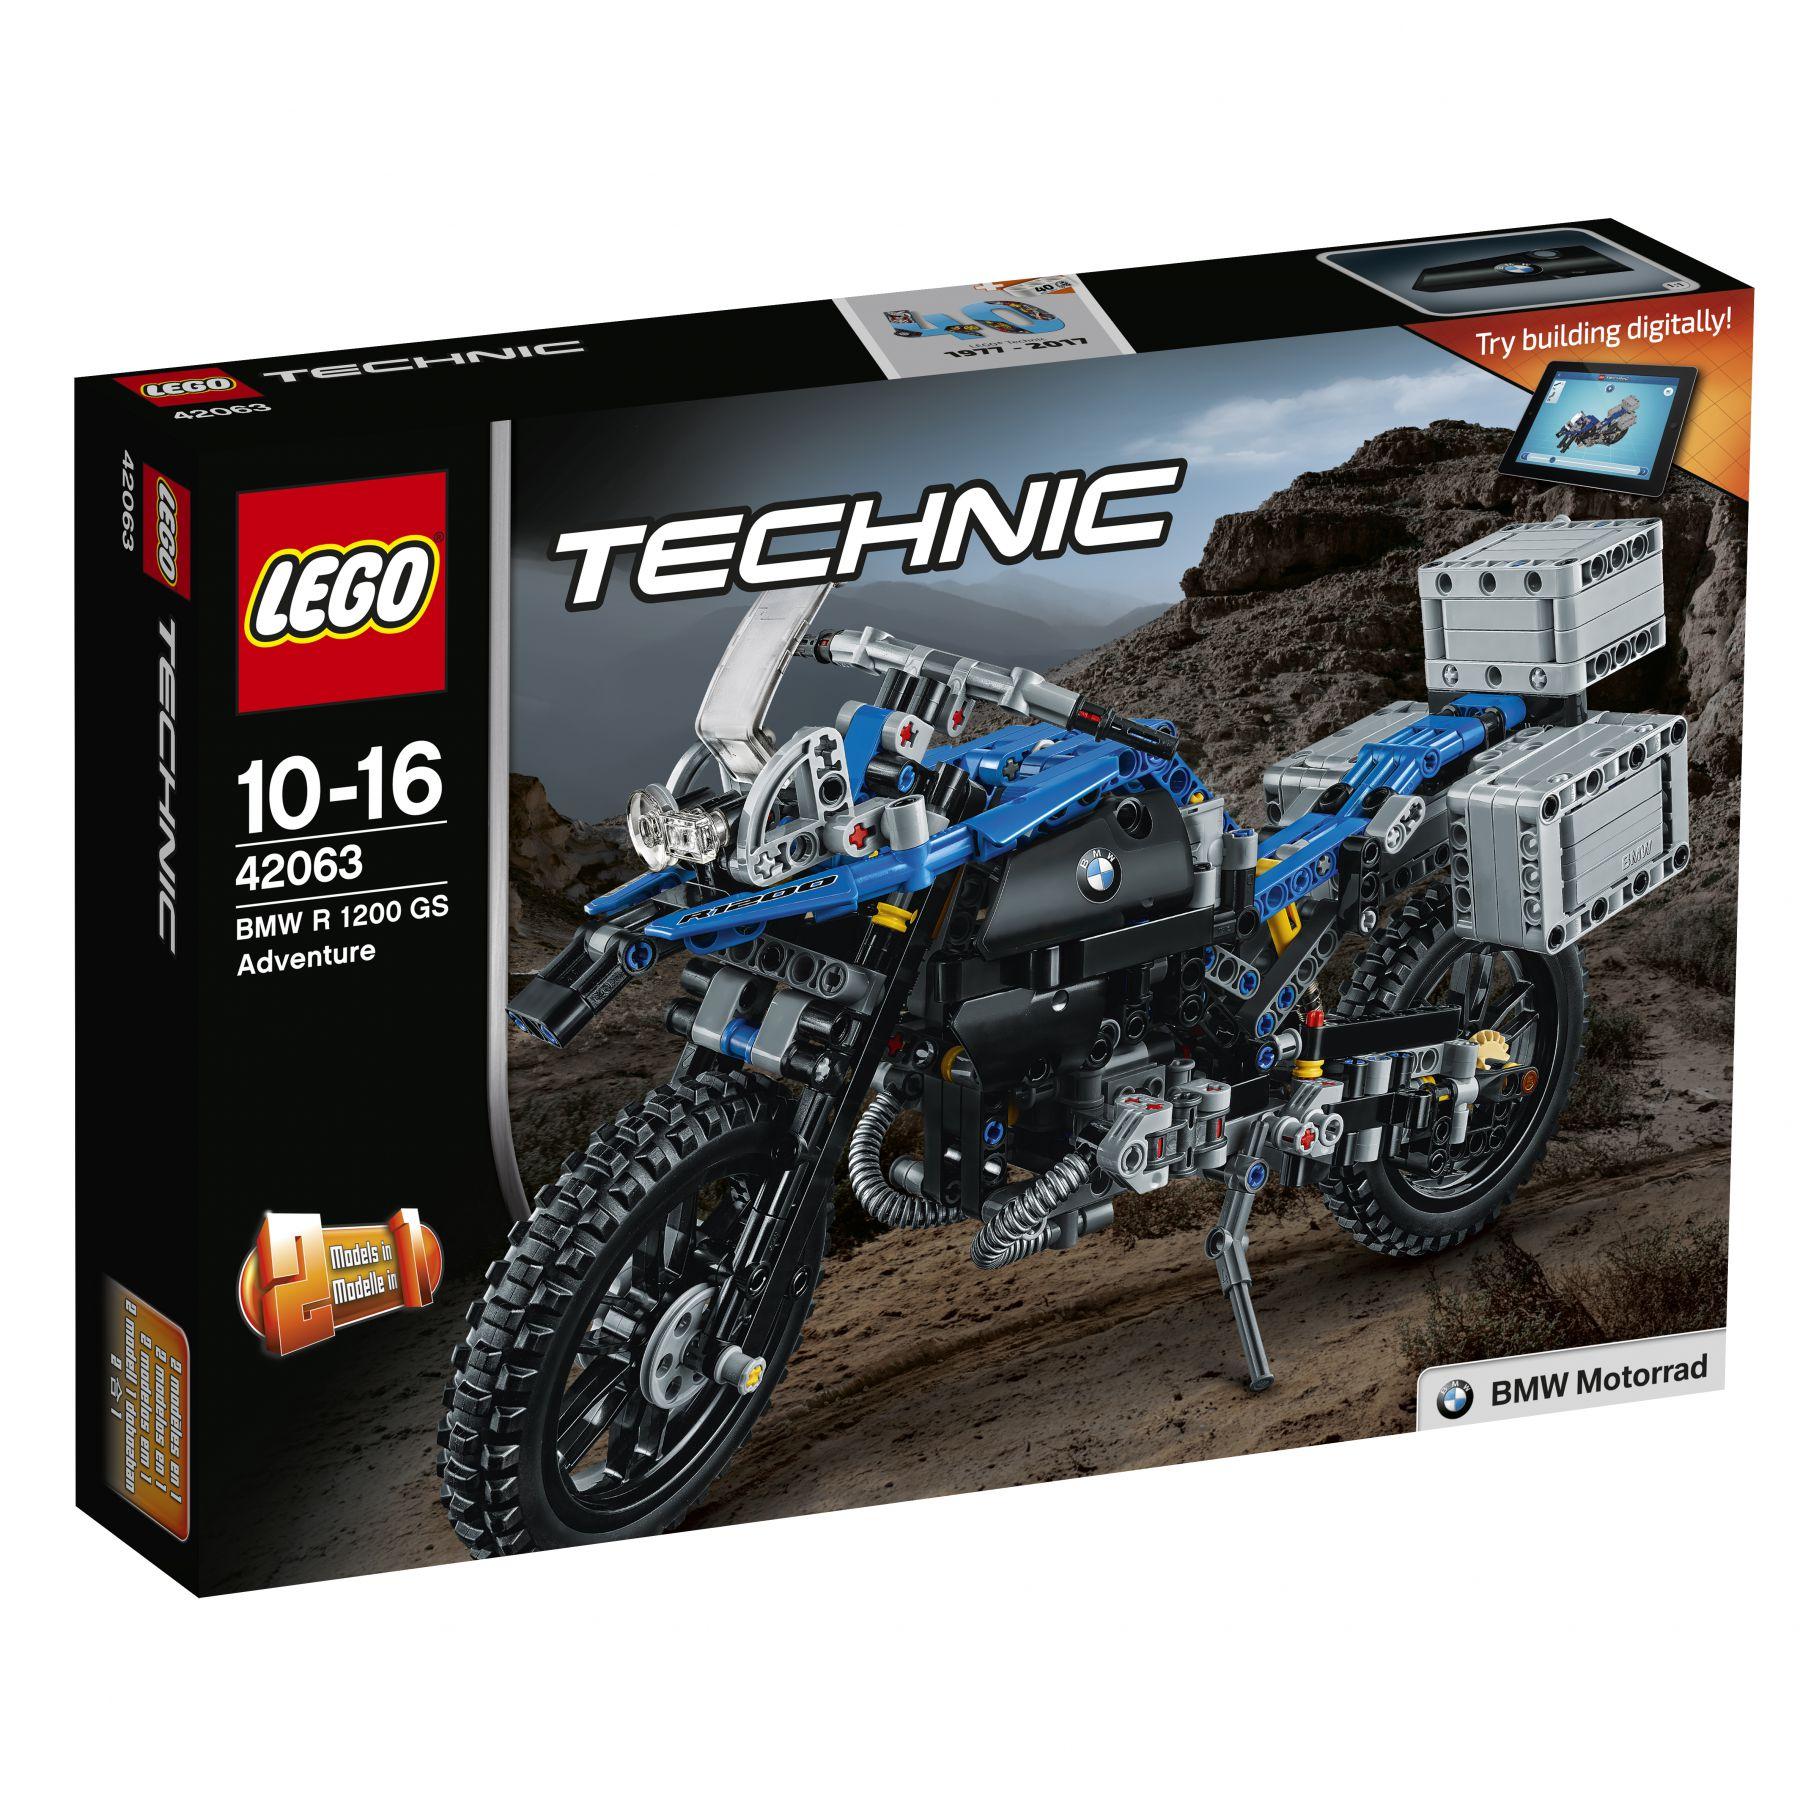 LEGO Technic 42063 BMW R 1200 GS Adventure LEGO_42063_bmw-R-1200-GS-Adventure_box.jpg